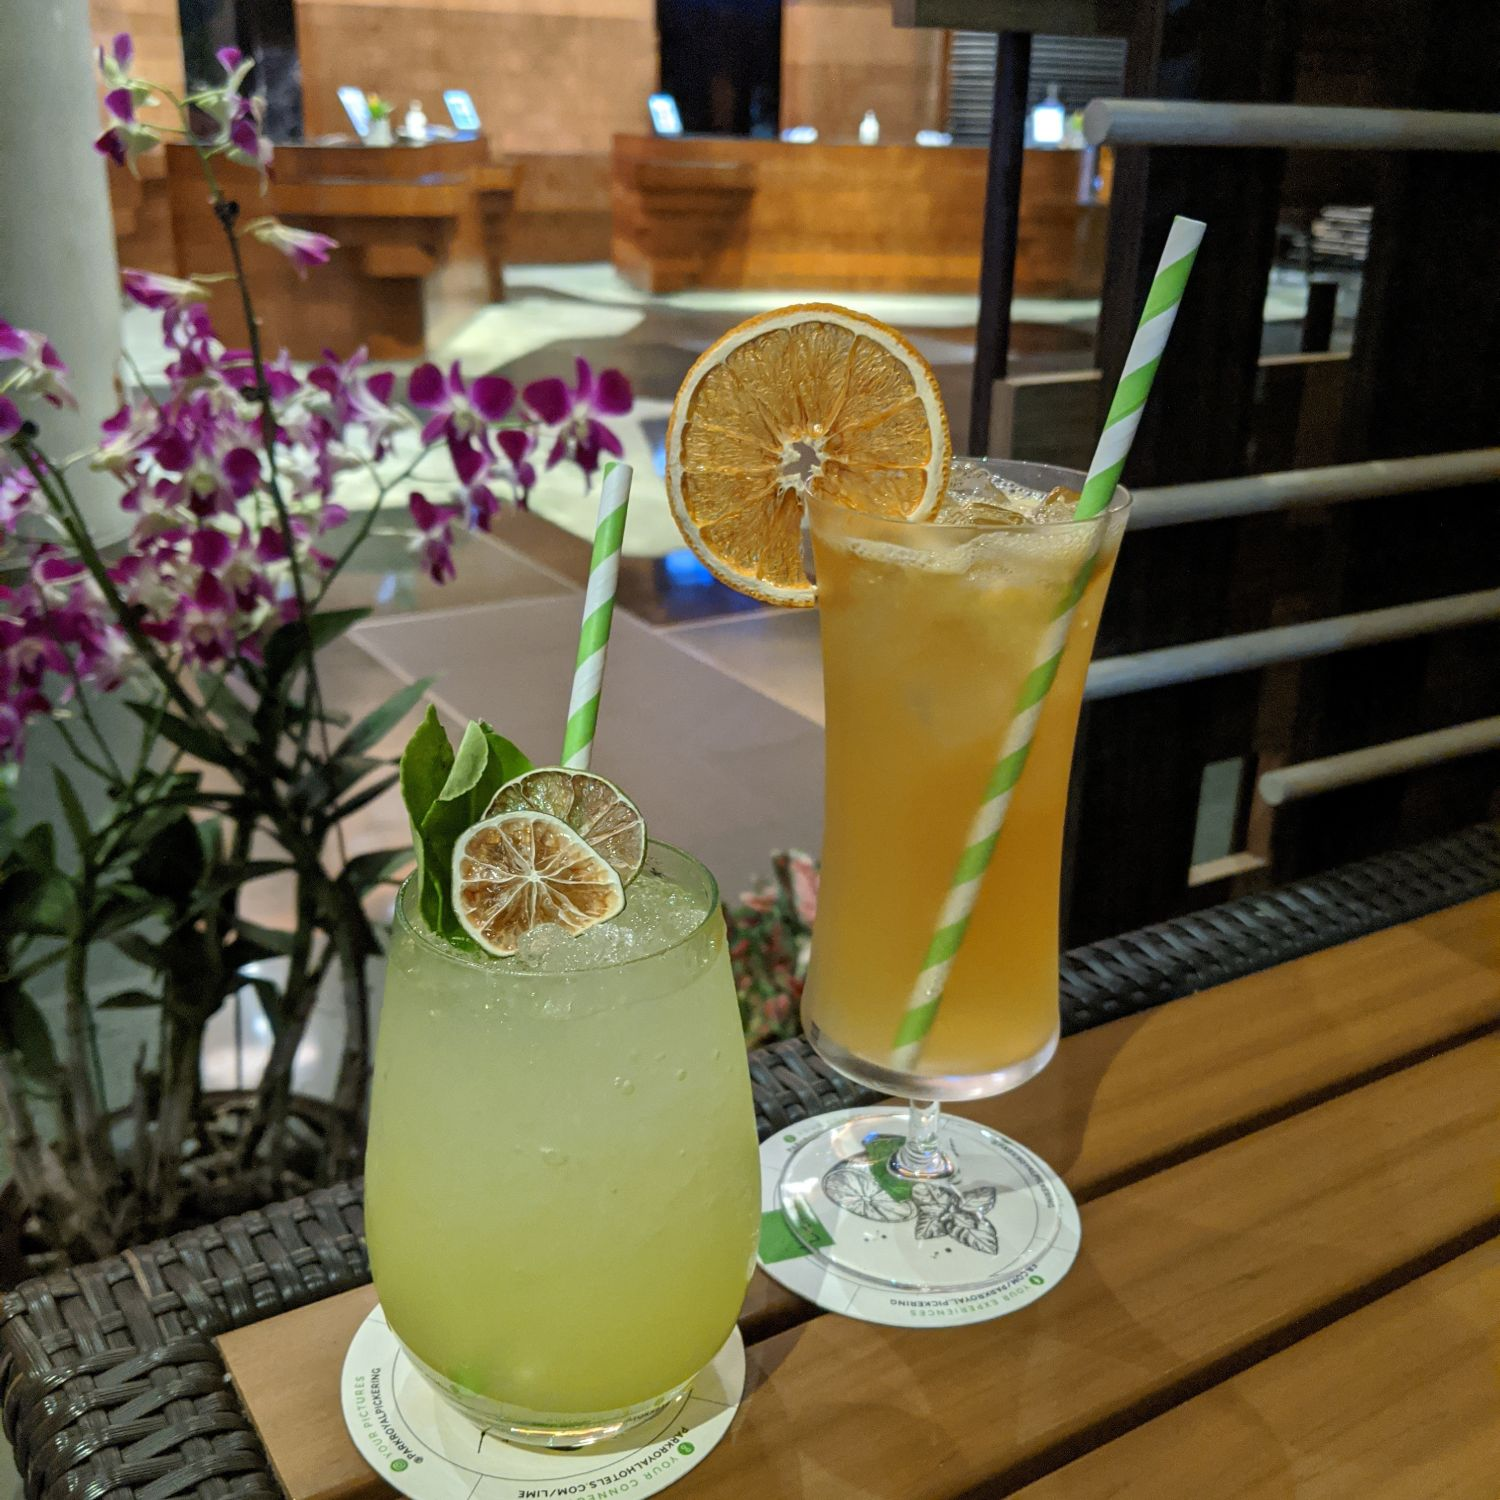 PARKROYAL COLLECTION Pickering, Singapore lime bar Spike Your Limeade and Punched by Bruce Lee